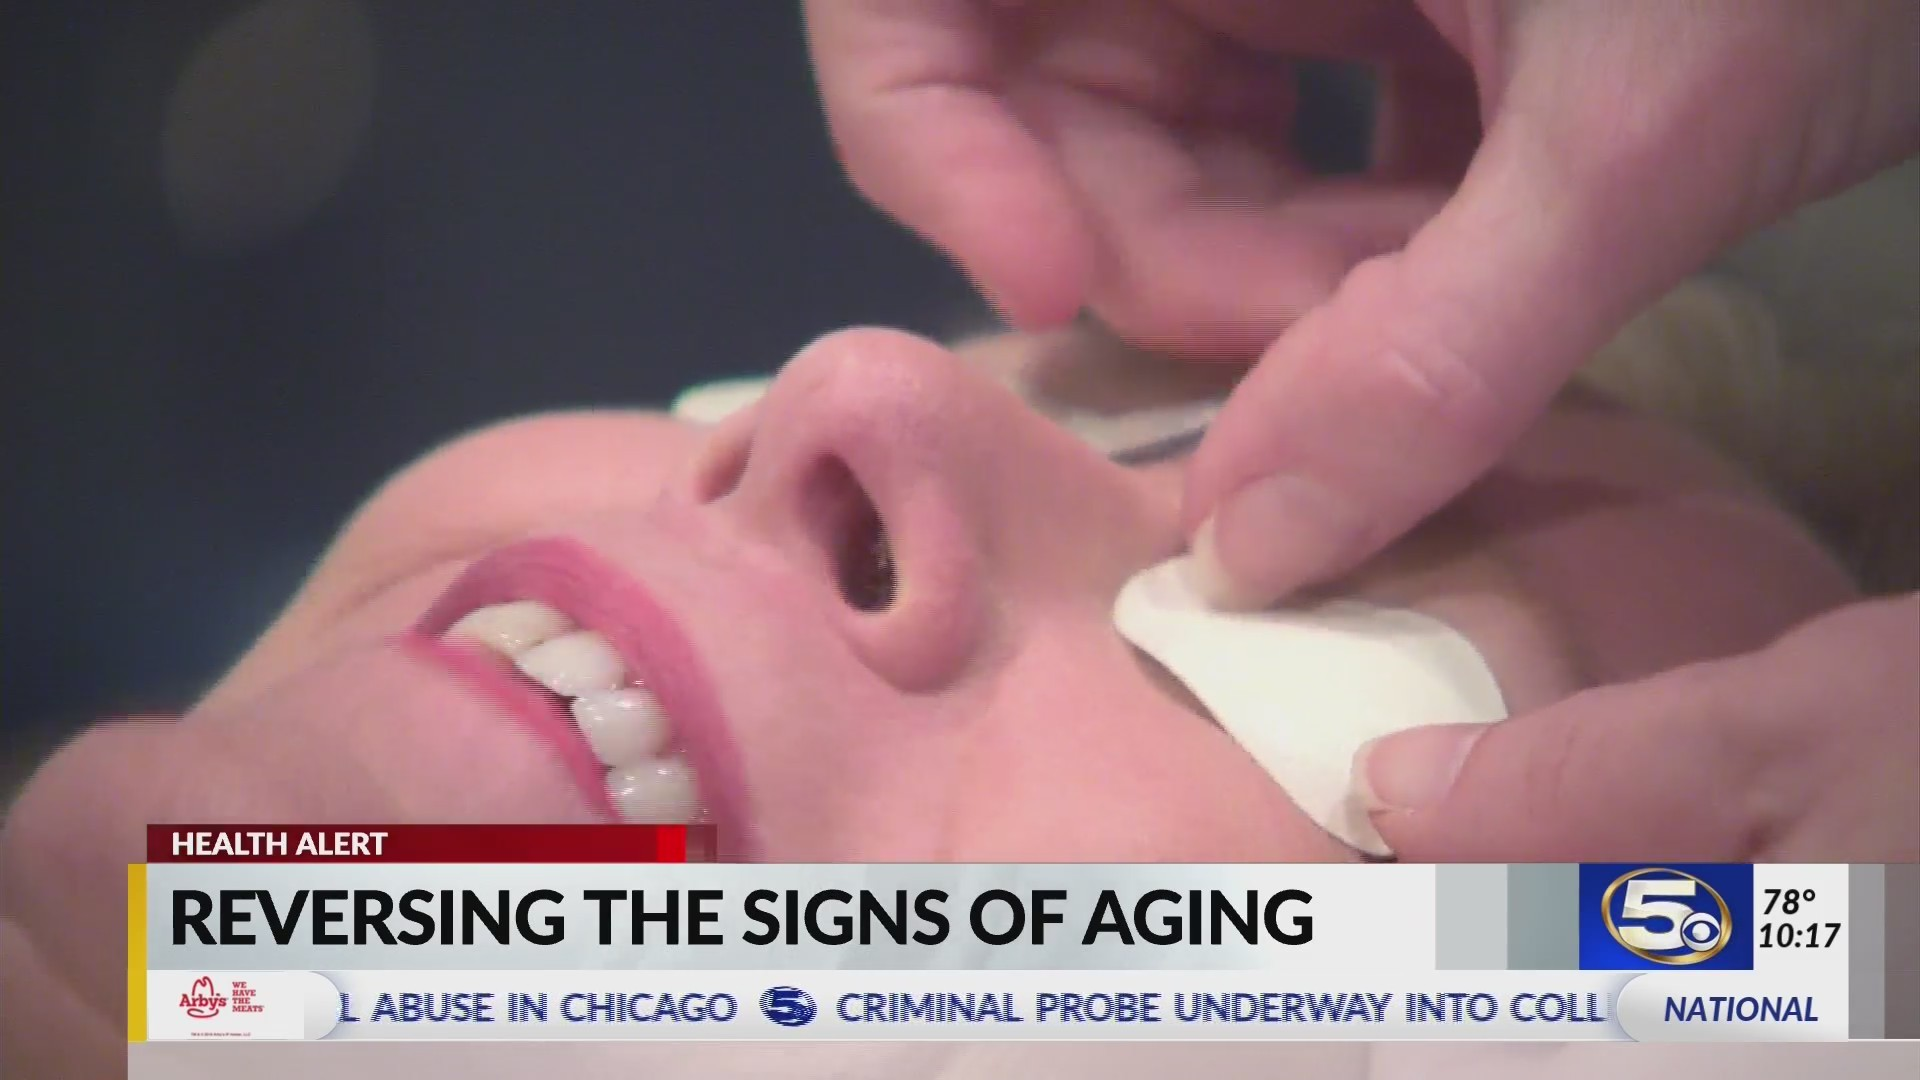 VIDEO: Reversing the signs of aging on your skin